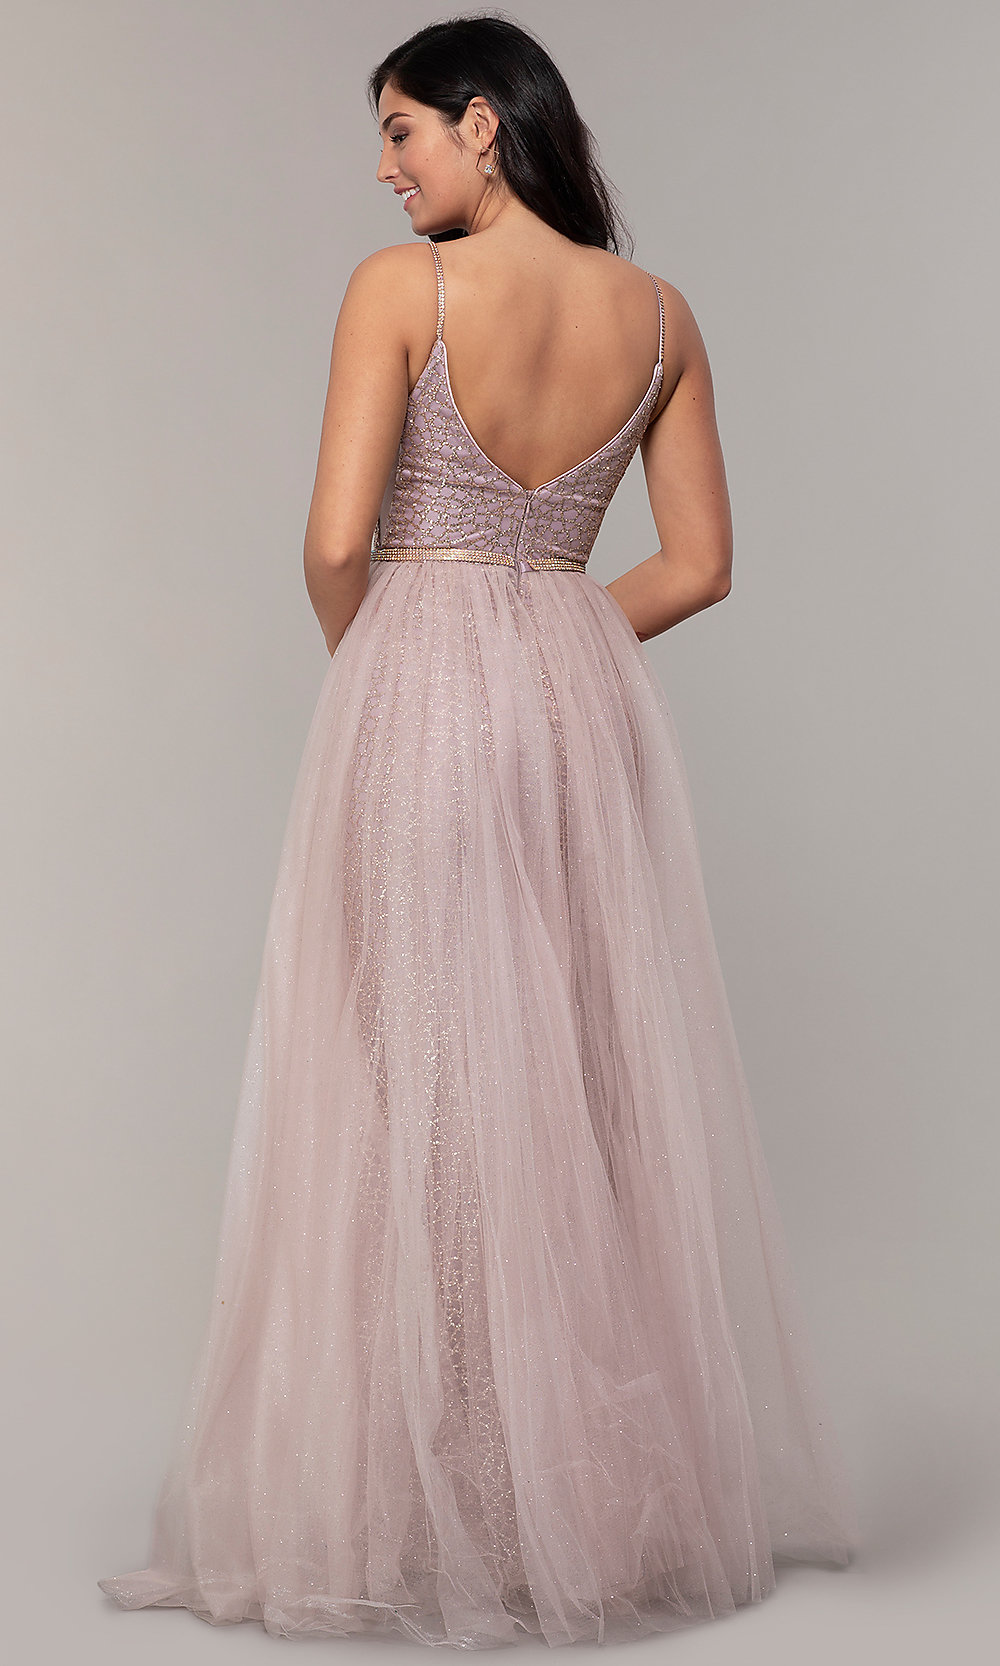 330475aab1a Image of glitter-mesh long prom dress with tulle overskirt. Style  DQ-. Tap  to expand